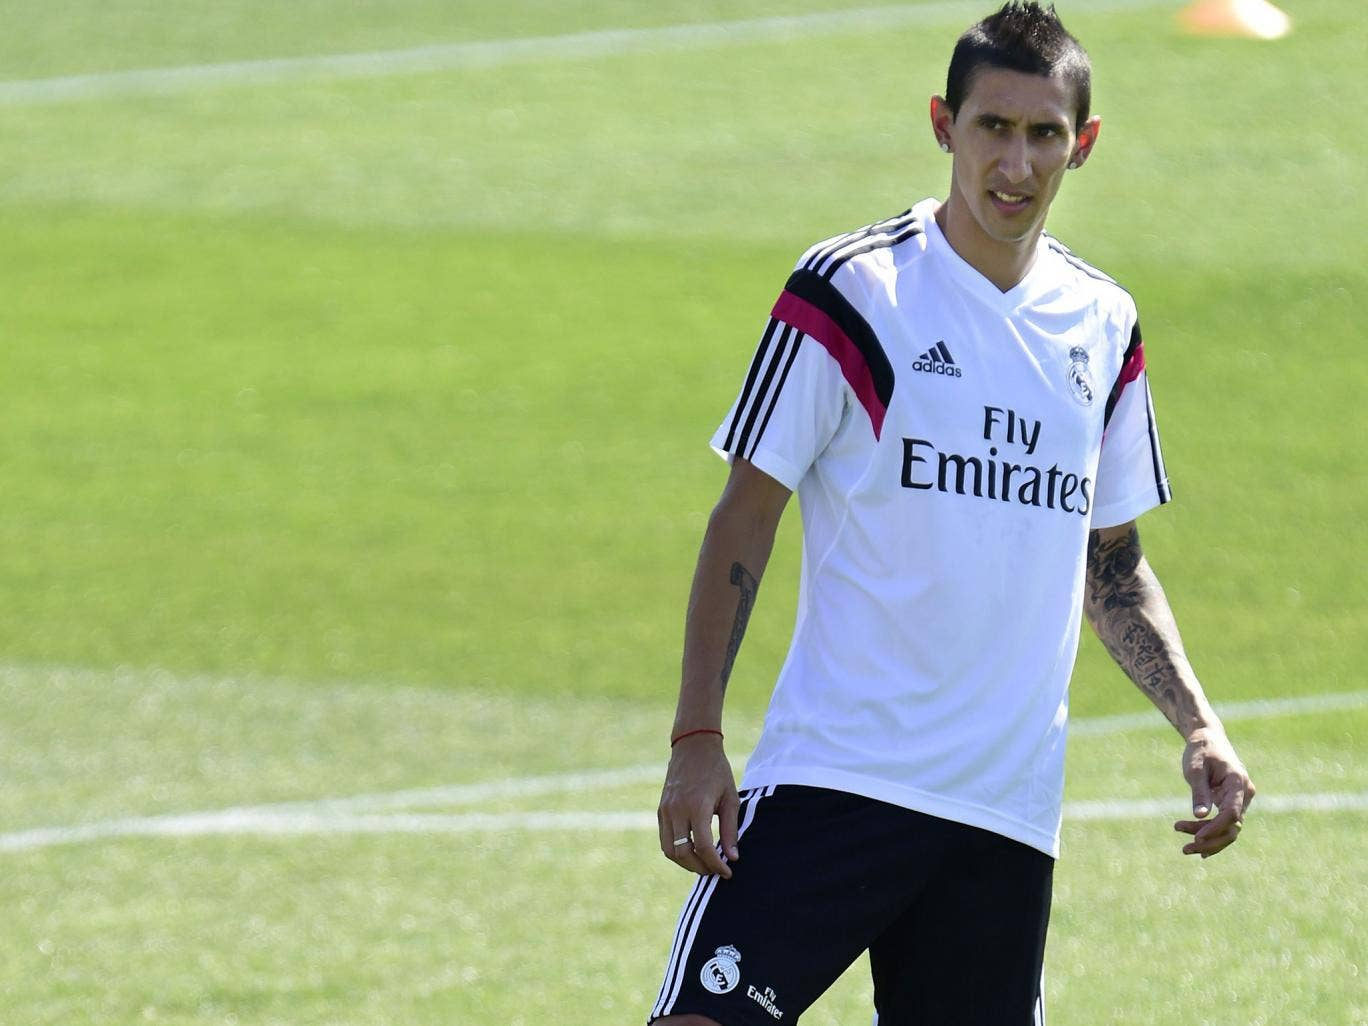 Angel di Maria pictured during training with Real Madrid today